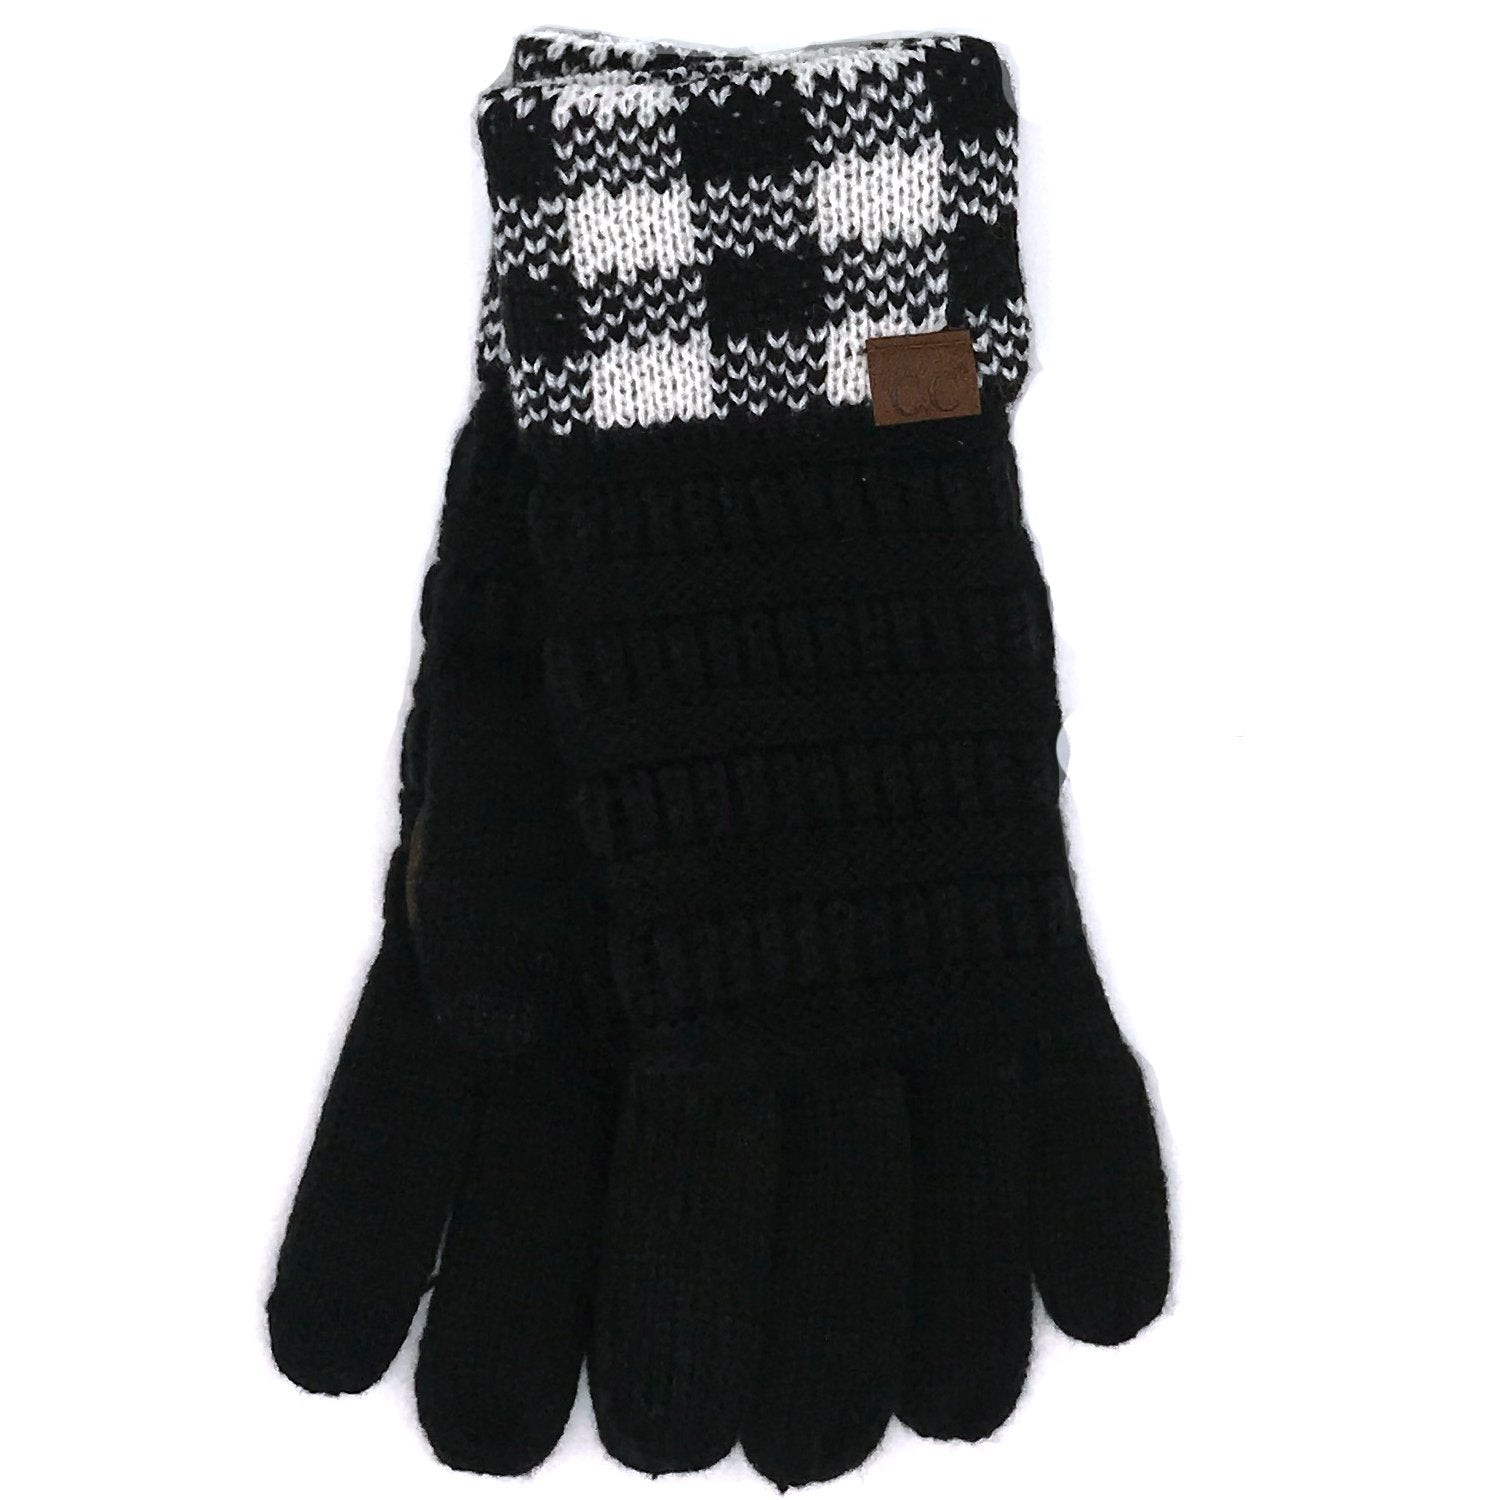 G-17 GLOVE BUFFALO PLAID CUFF BLACK WHITE-BLACK